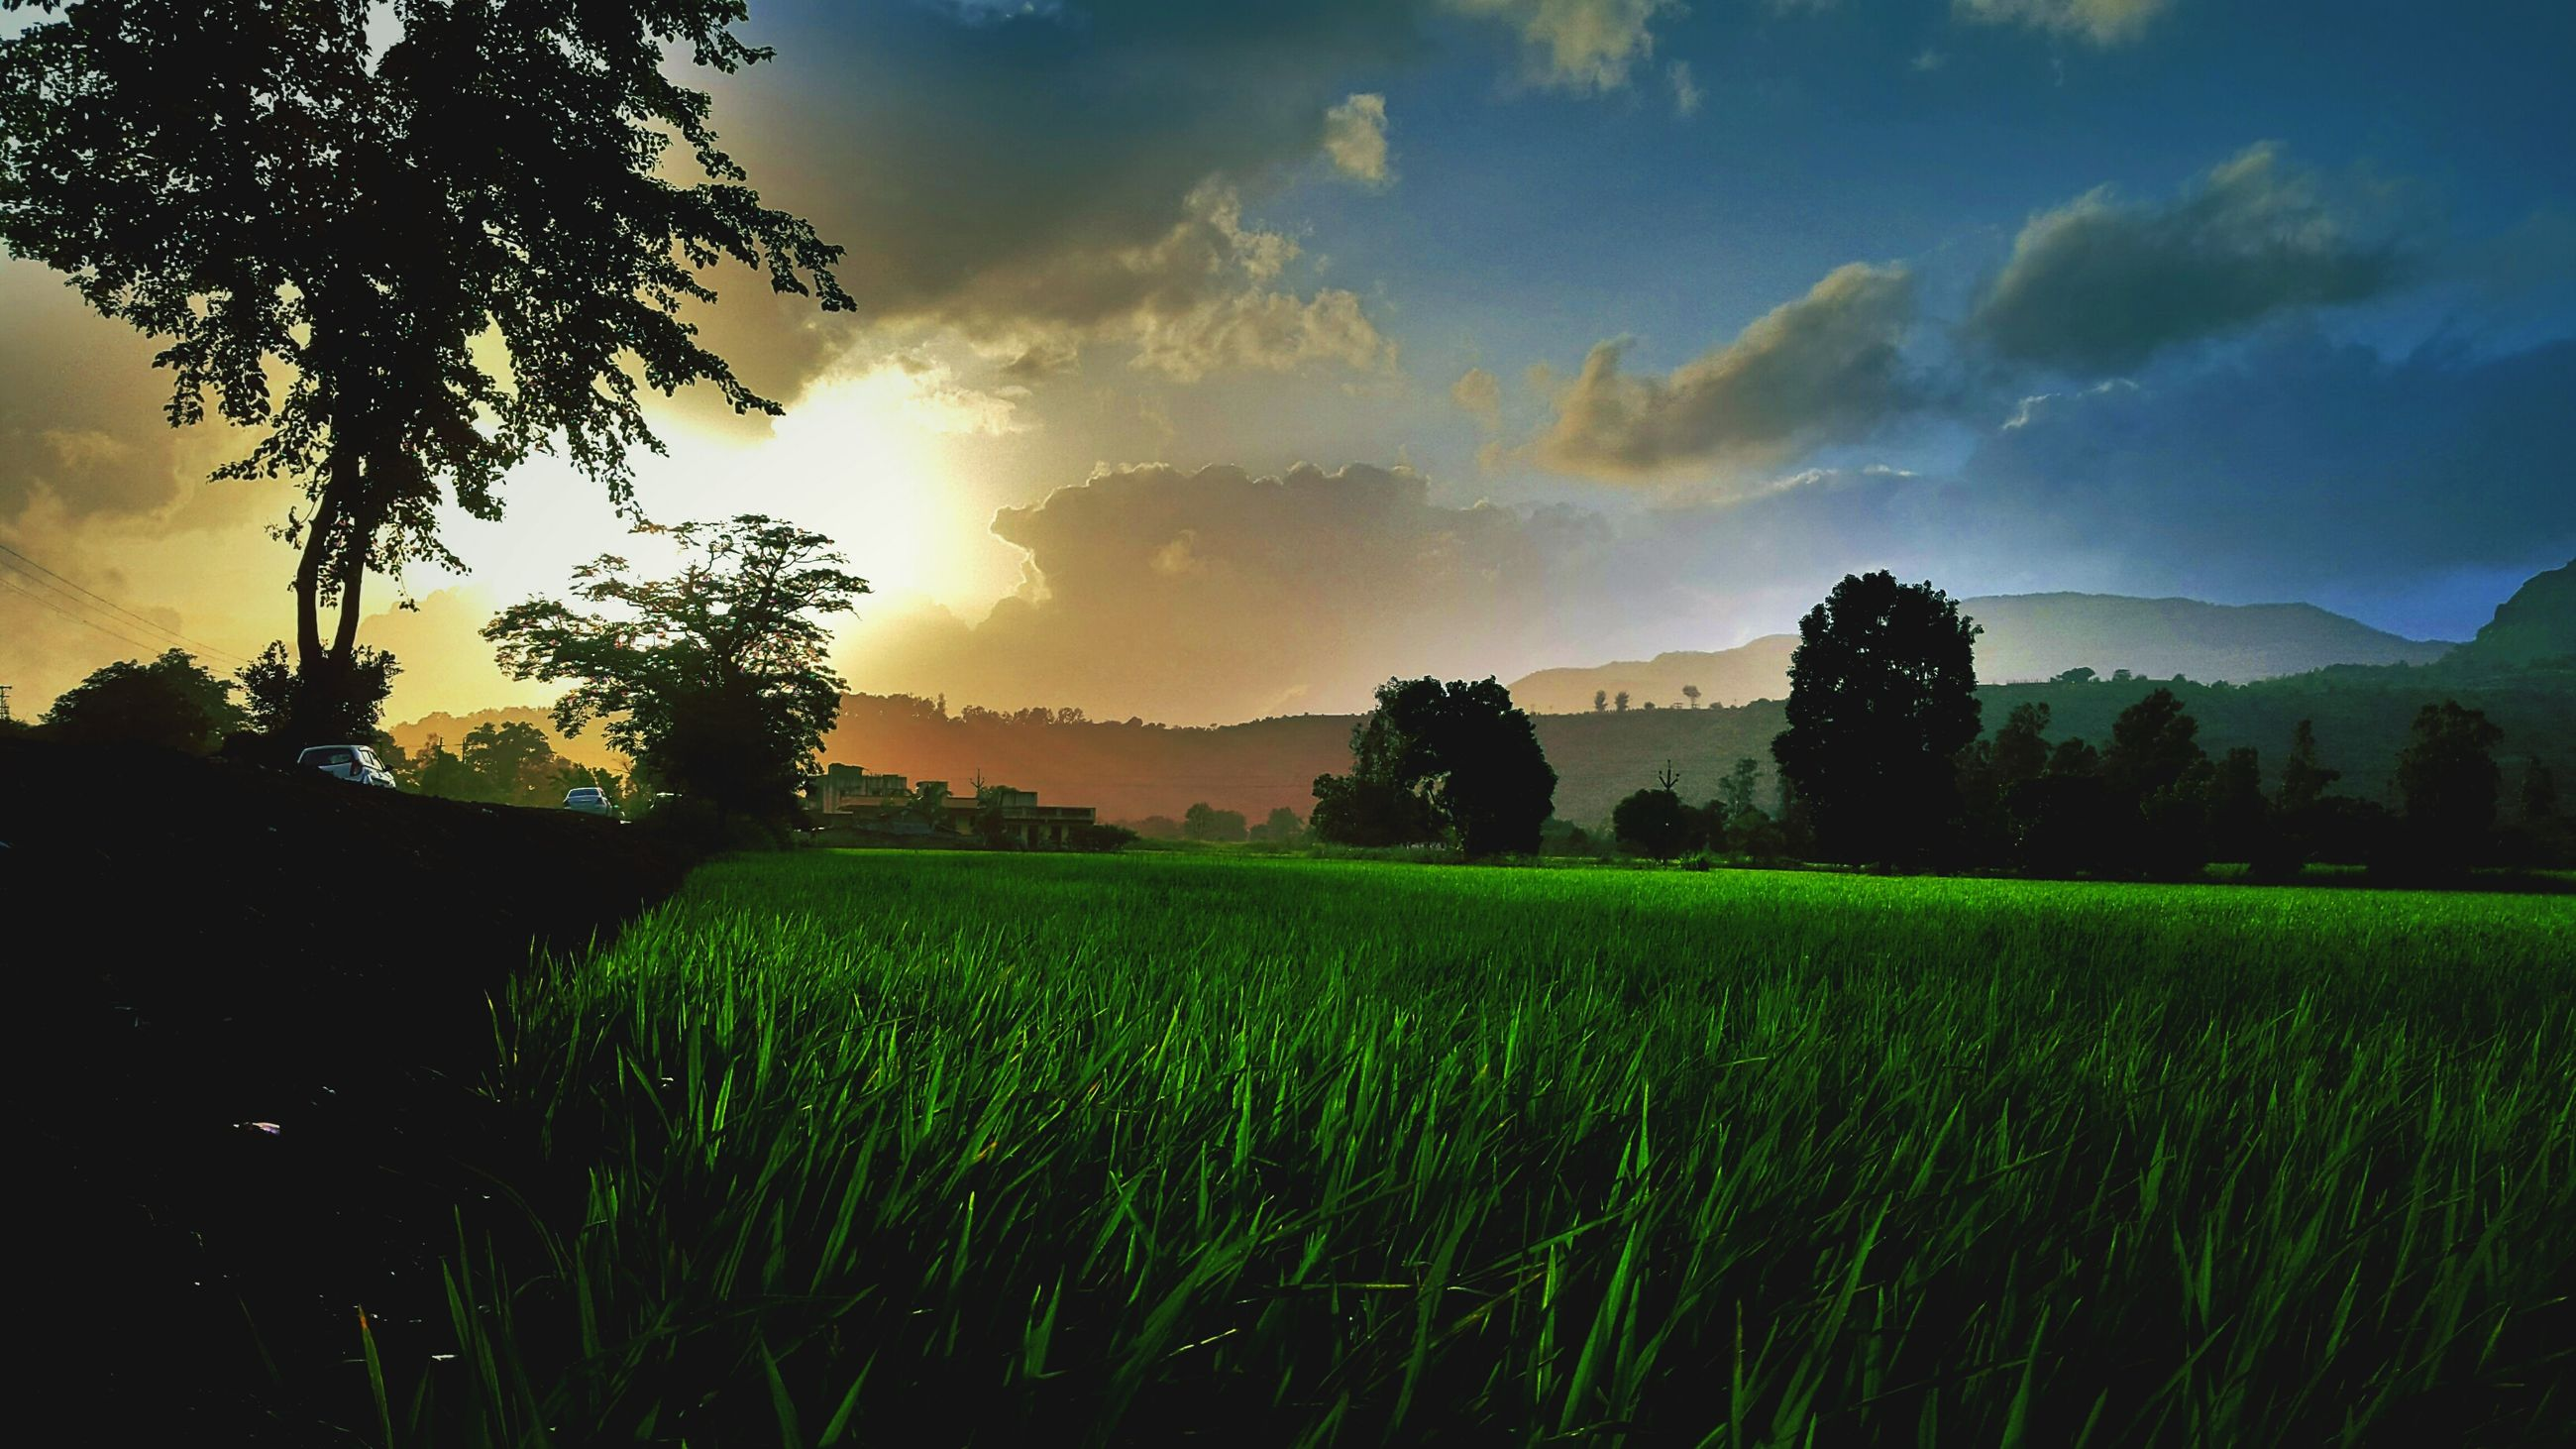 tree, tranquil scene, field, landscape, rural scene, agriculture, sunset, scenics, sky, farm, tranquility, green color, beauty in nature, growth, crop, nature, solitude, sun, cloud - sky, cultivated land, countryside, remote, outdoors, non-urban scene, no people, majestic, green